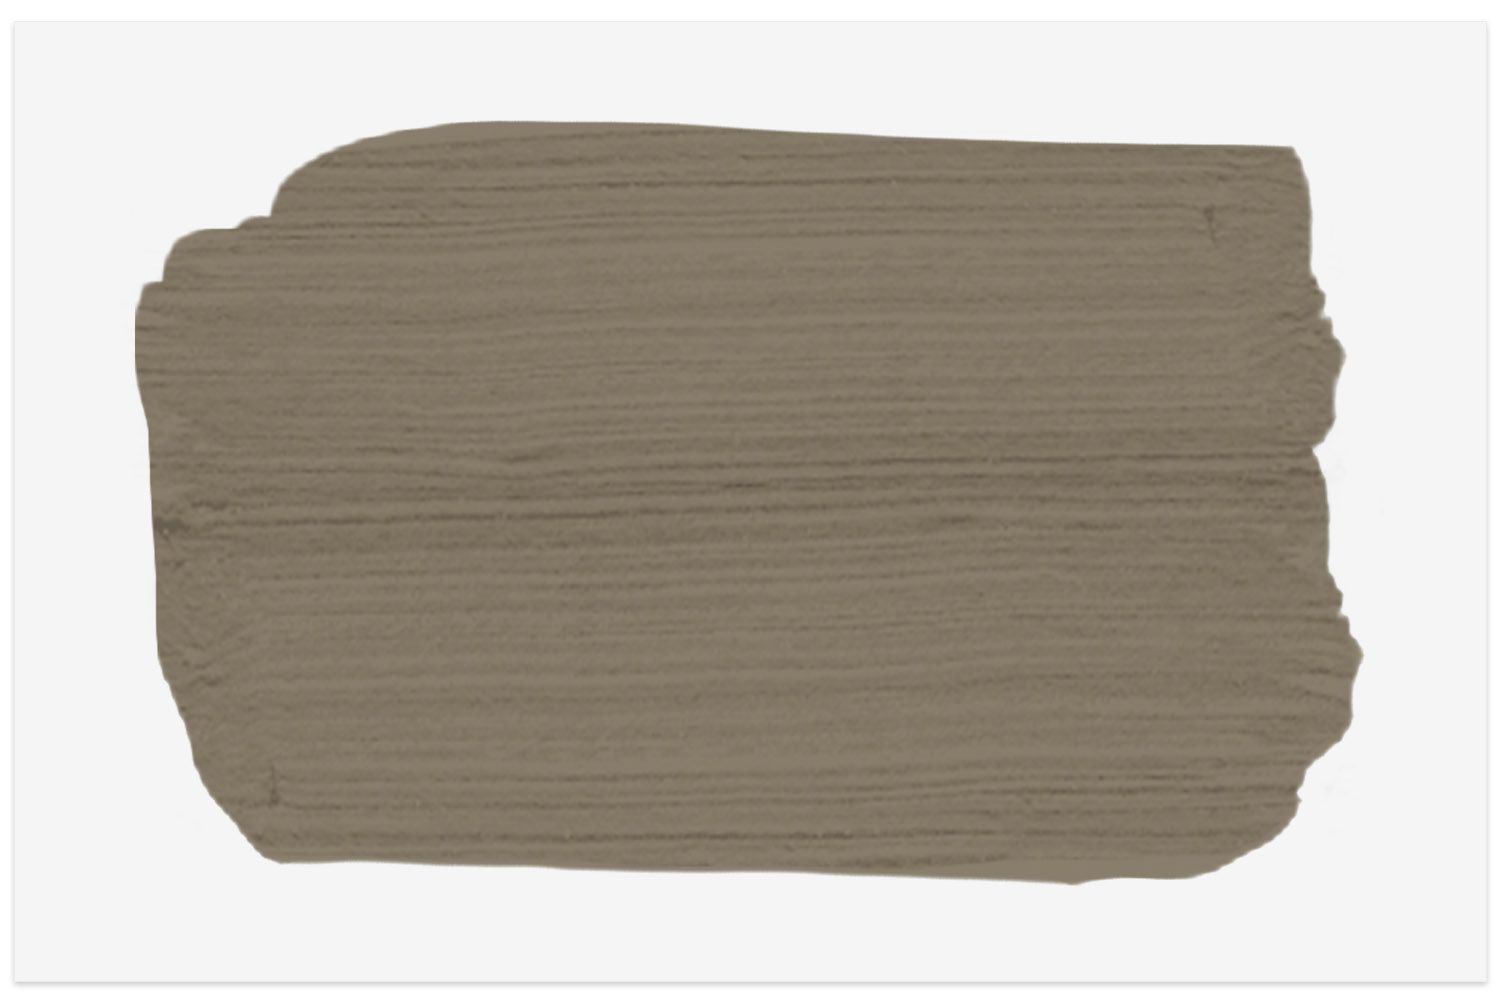 Warm Stone paint swatch from Sherwin-Williams